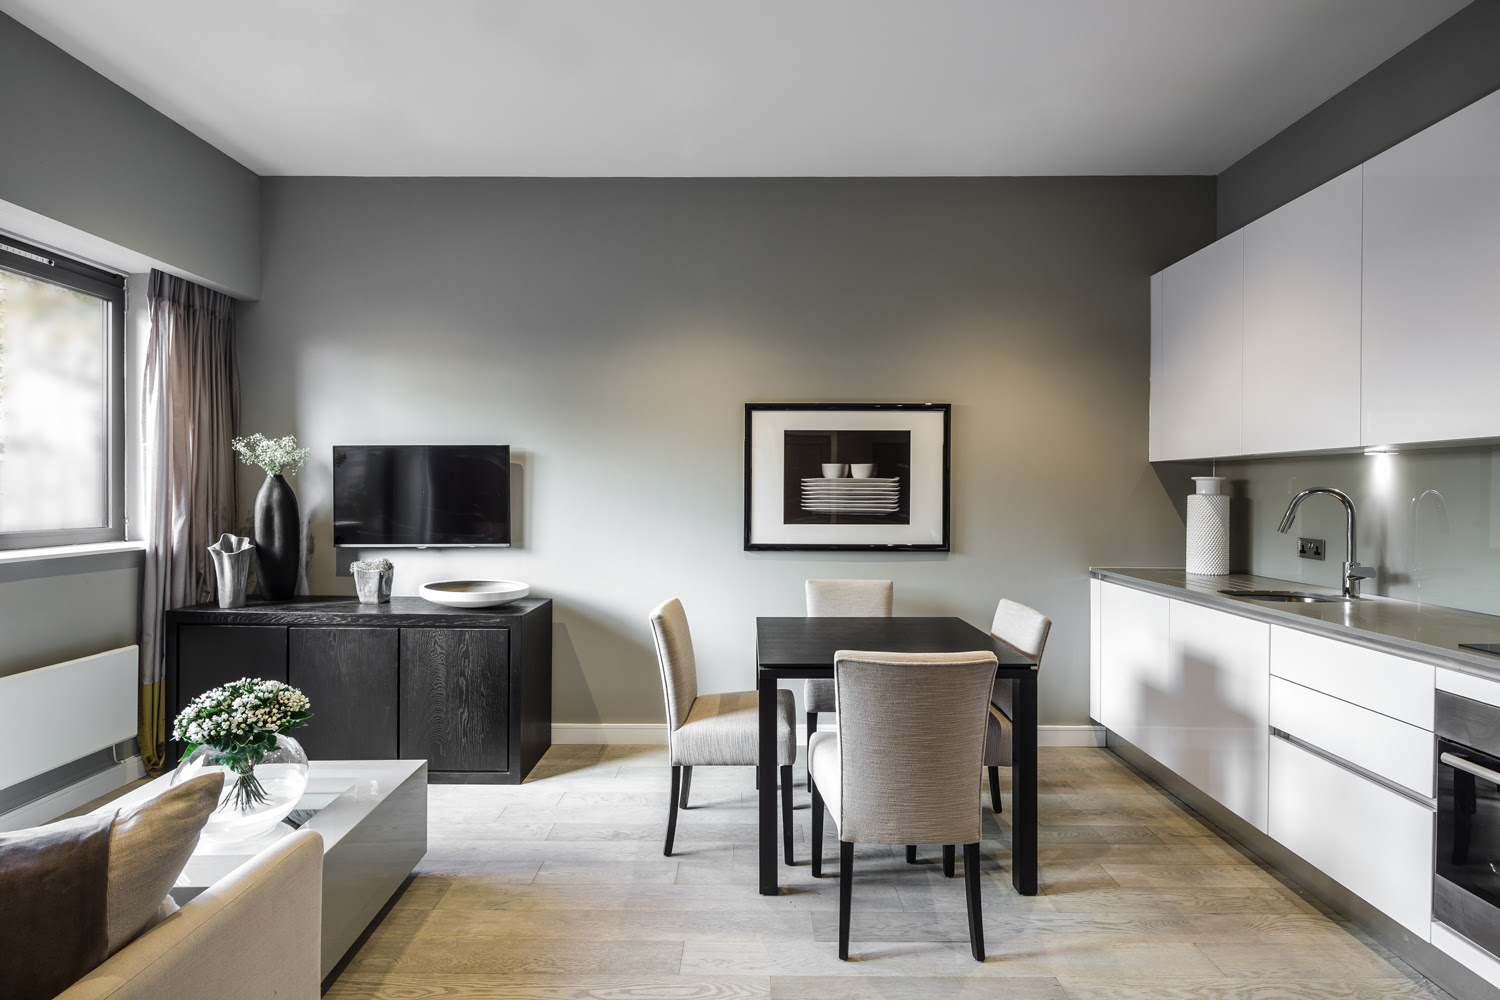 Reeve Wood Provides Flooring For Kelly Hoppen Building